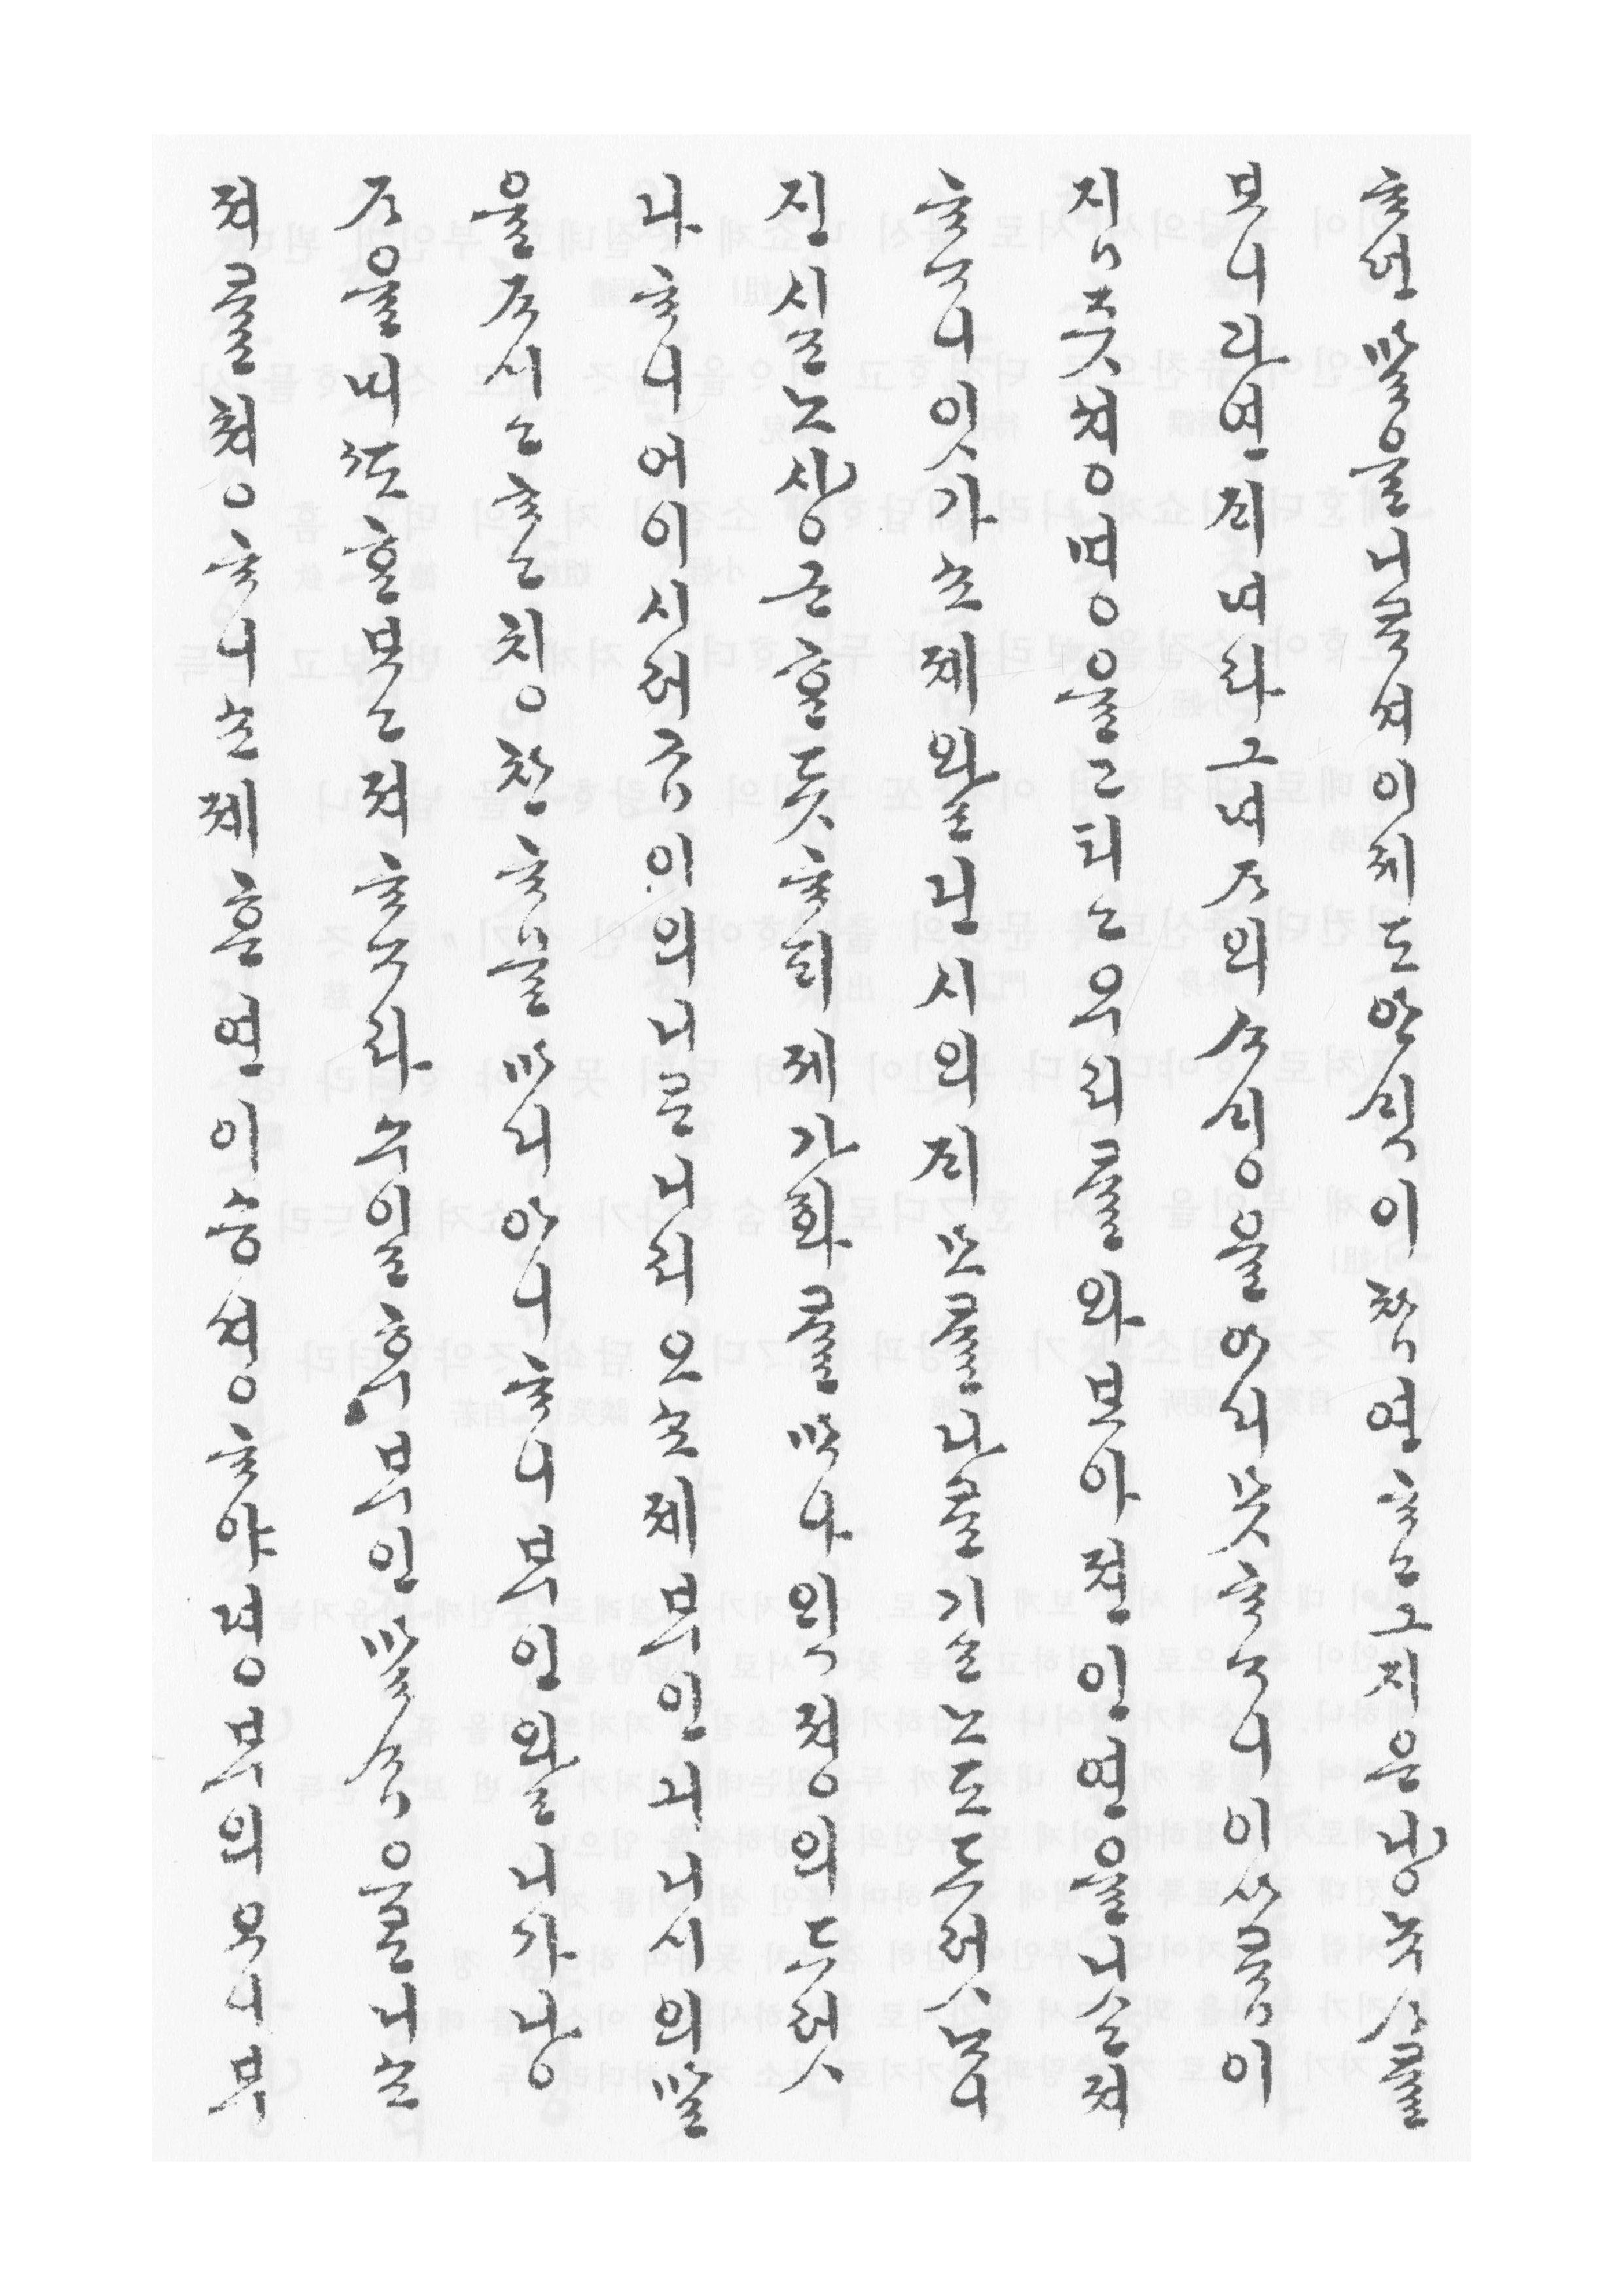 Pin by Ursula Sparrow on 한국마ㄹ Typography, Words, Word